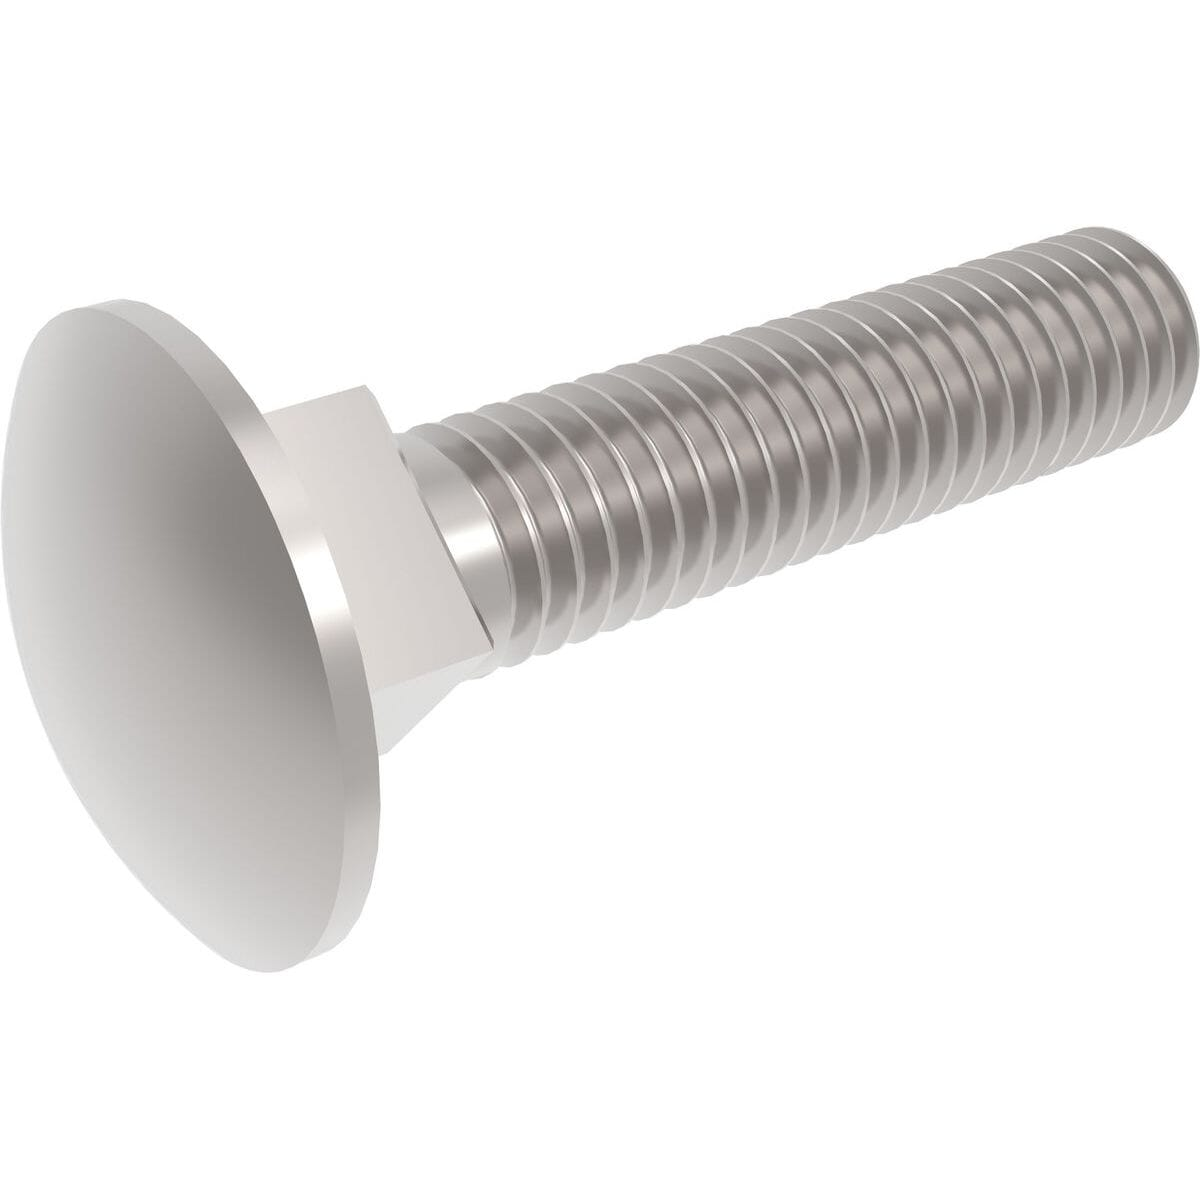 M6 x 60mm Full Thread Carriage Bolts (DIN 603) - Marine Stainless Steel (A4)